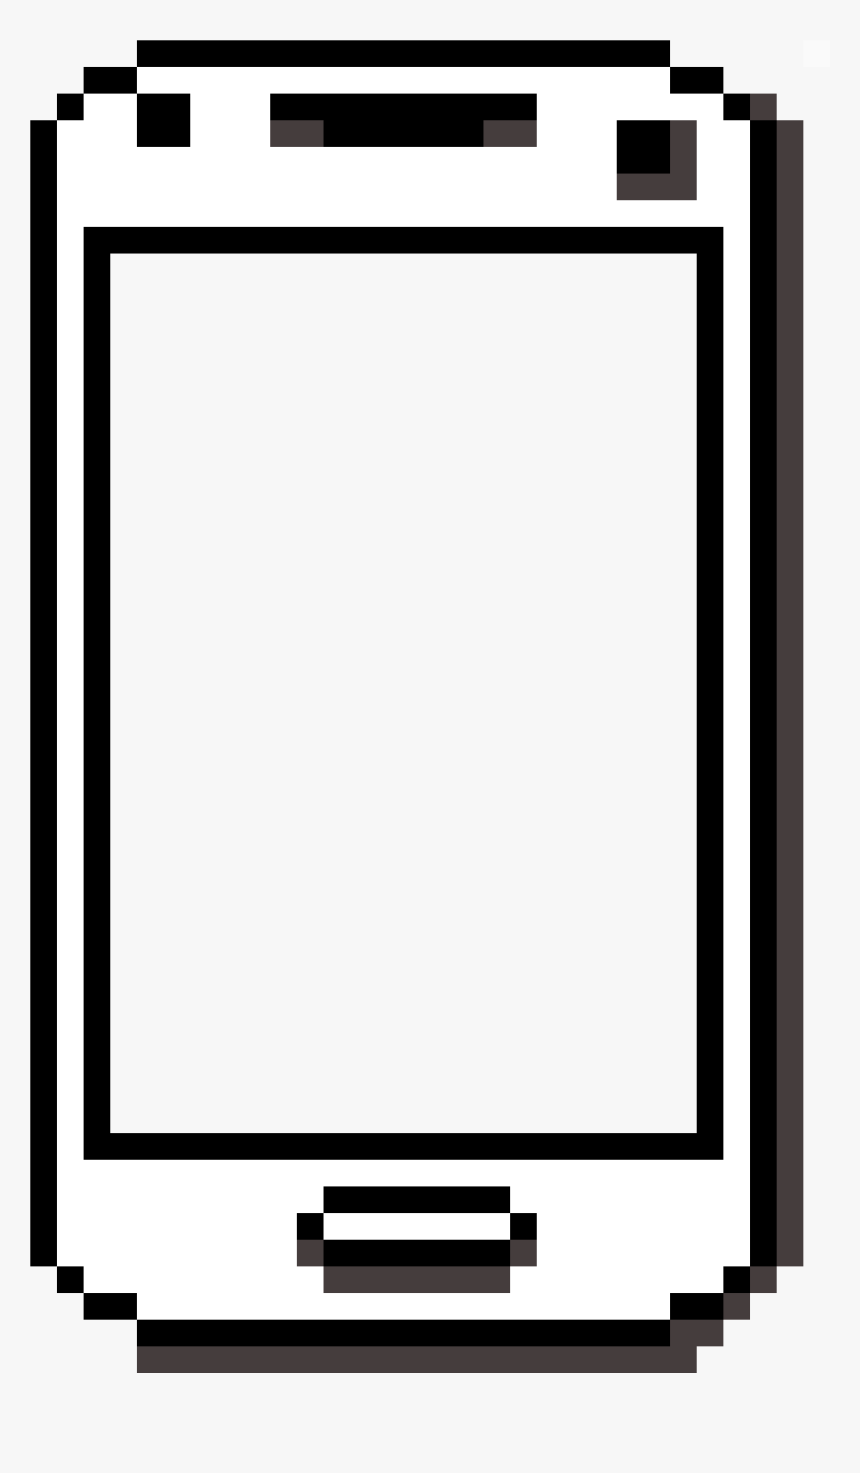 Transparent Phone Pixel Art - Phone Pixel Art Png, Png Download, Free Download